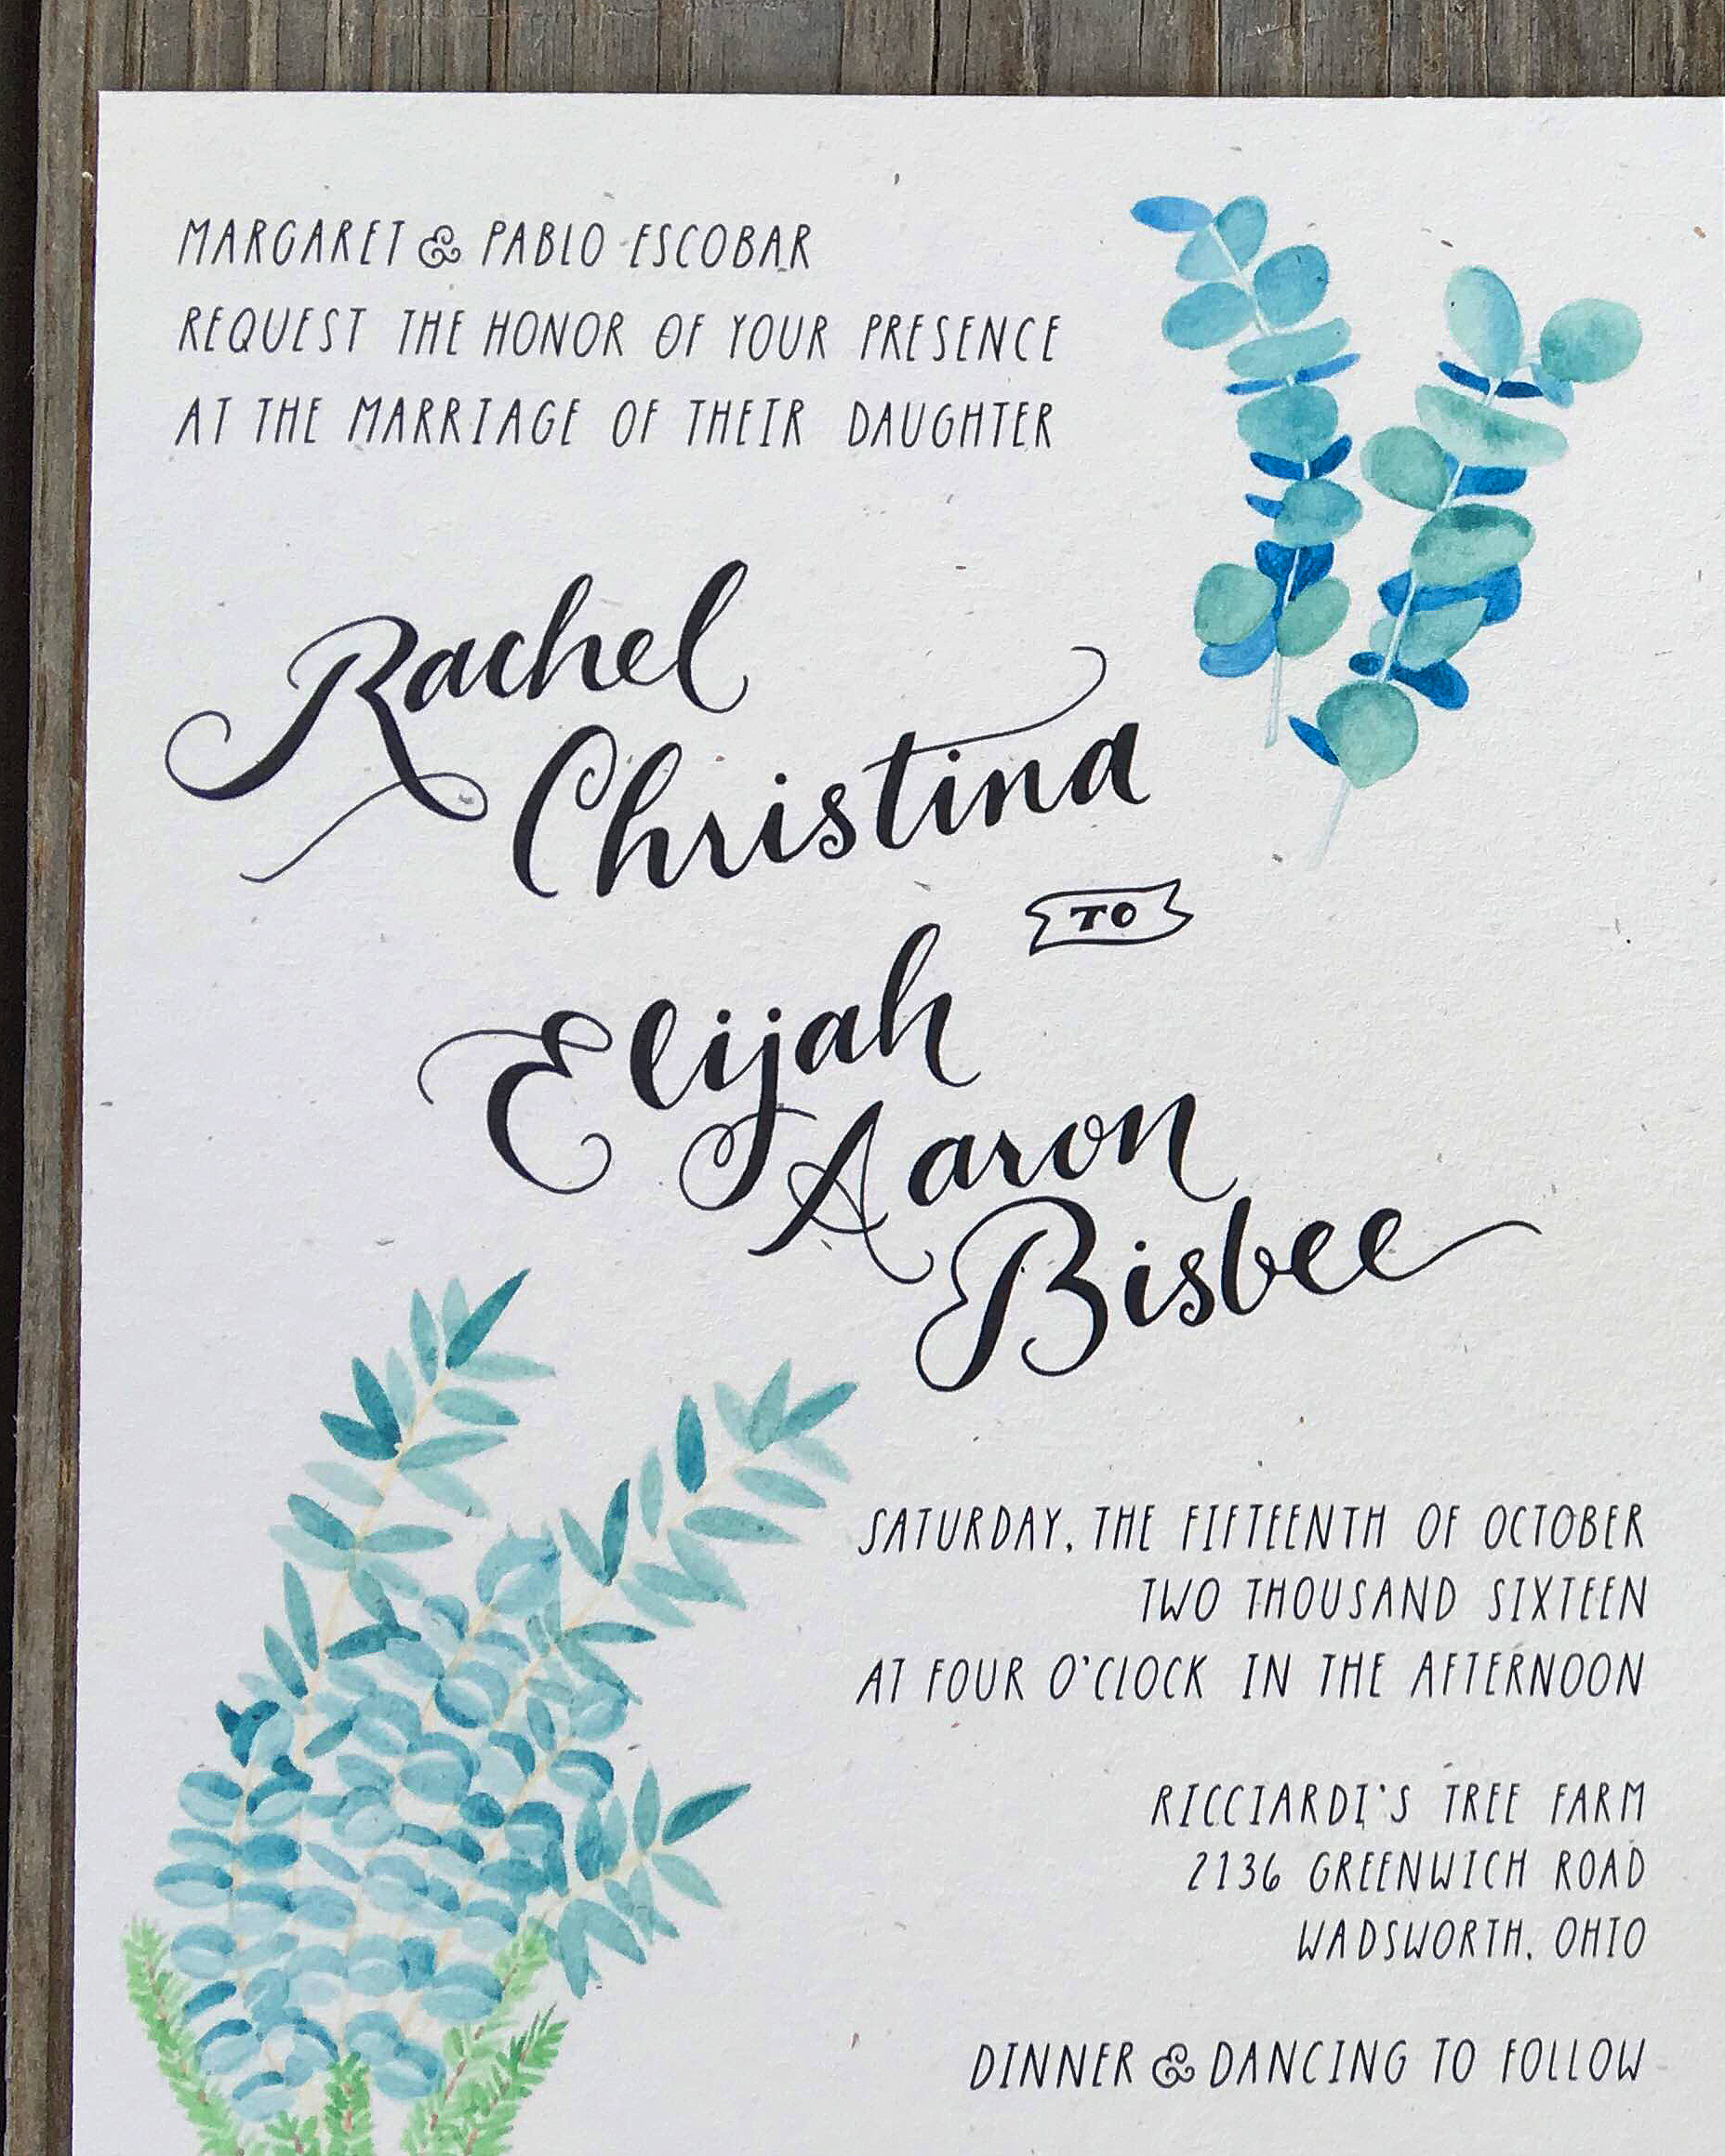 rachel elijah wedding invite